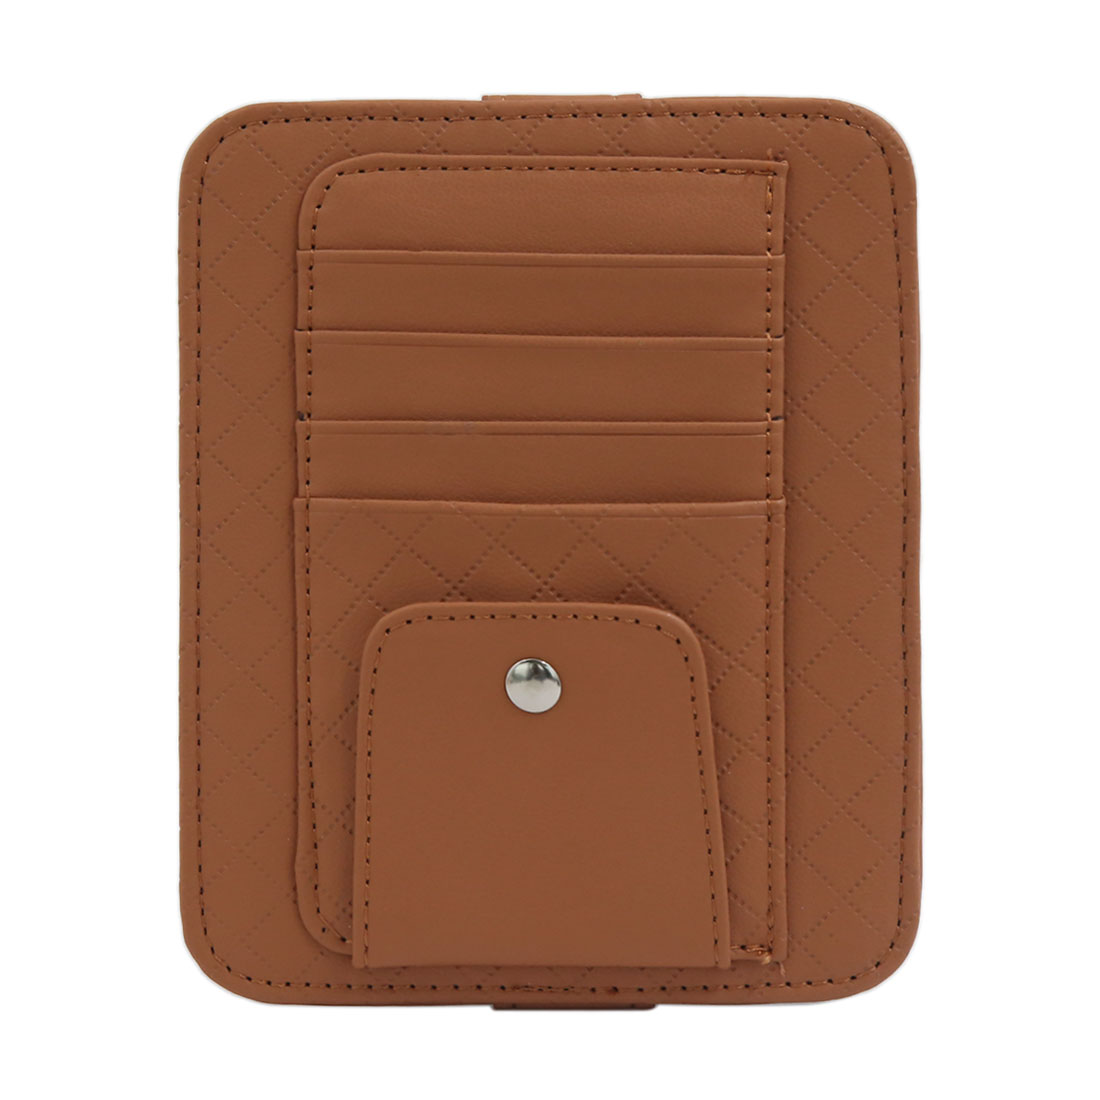 Multi-function 4 Capacity Credit Card Holder Case Bag Glasses Clip Brown for Auto Vehicle